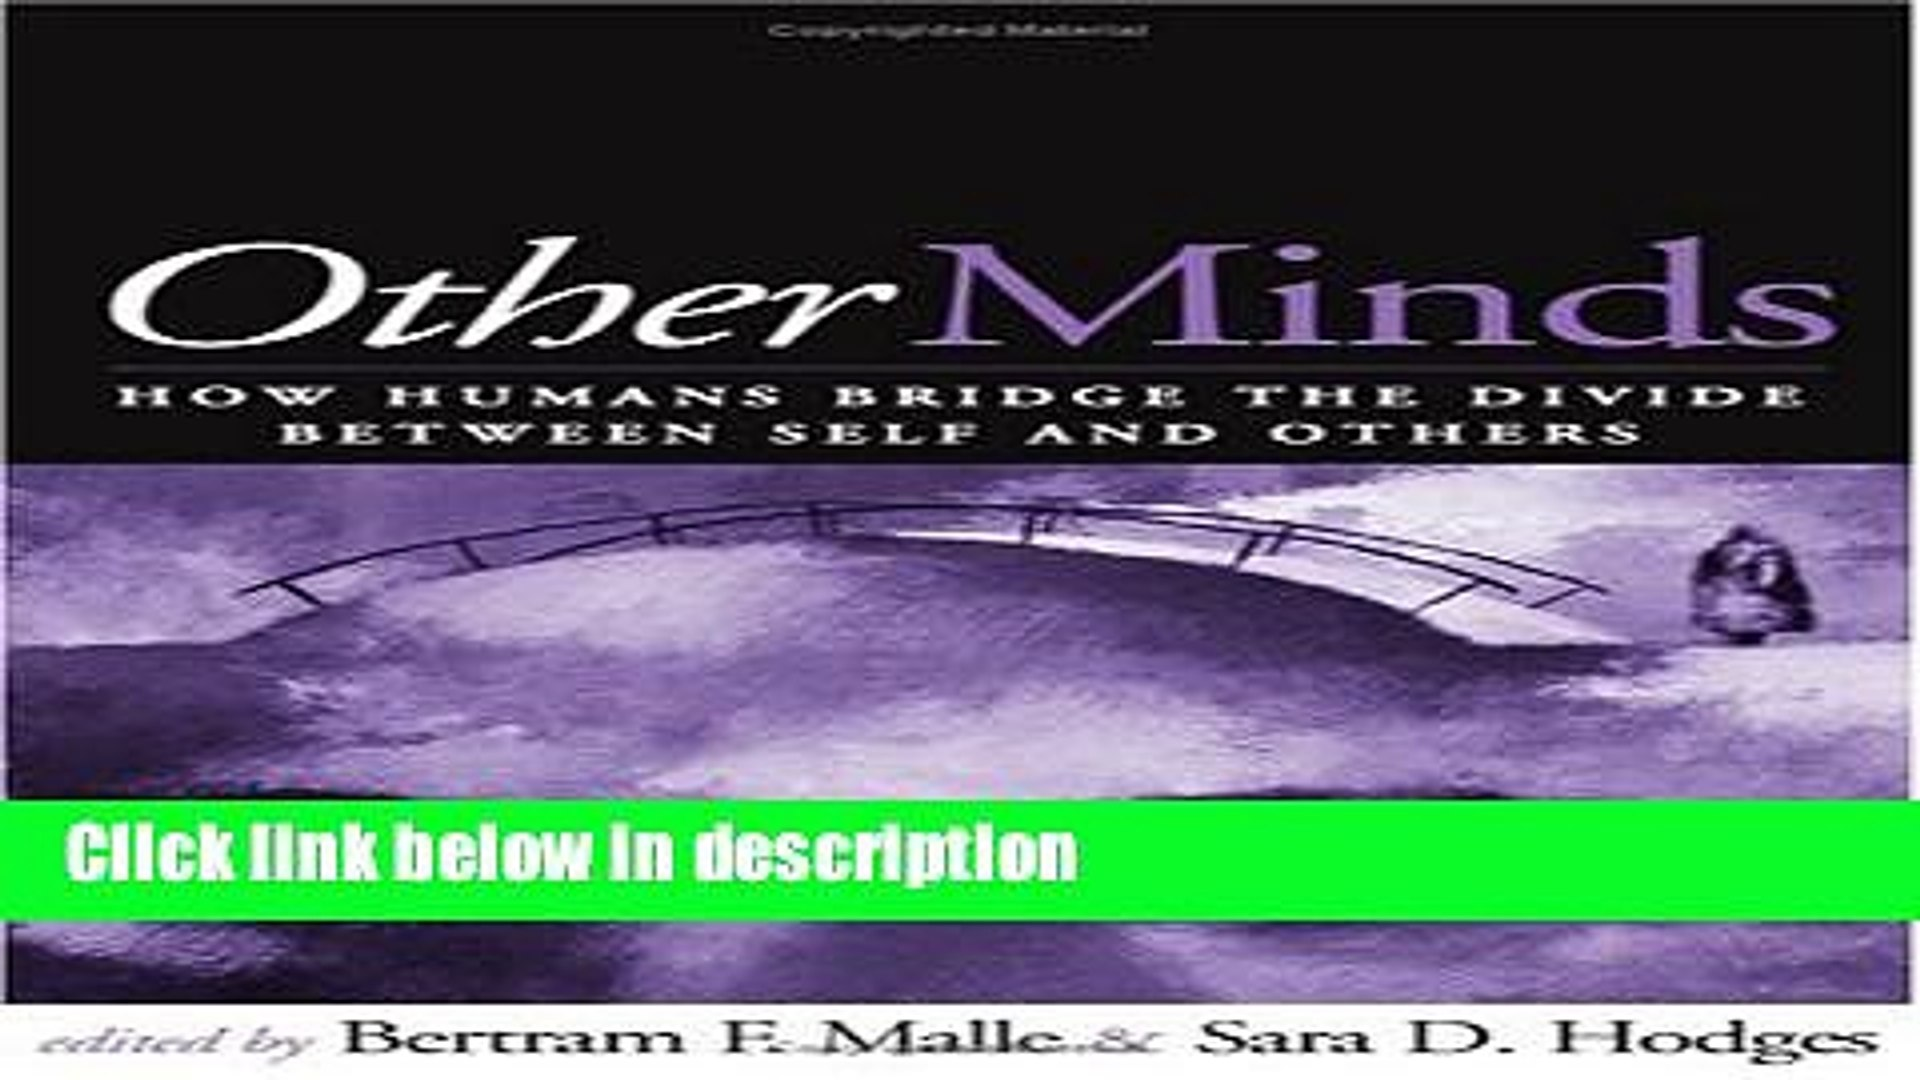 Books Other Minds: How Humans Bridge the Divide between Self and Others Full Online